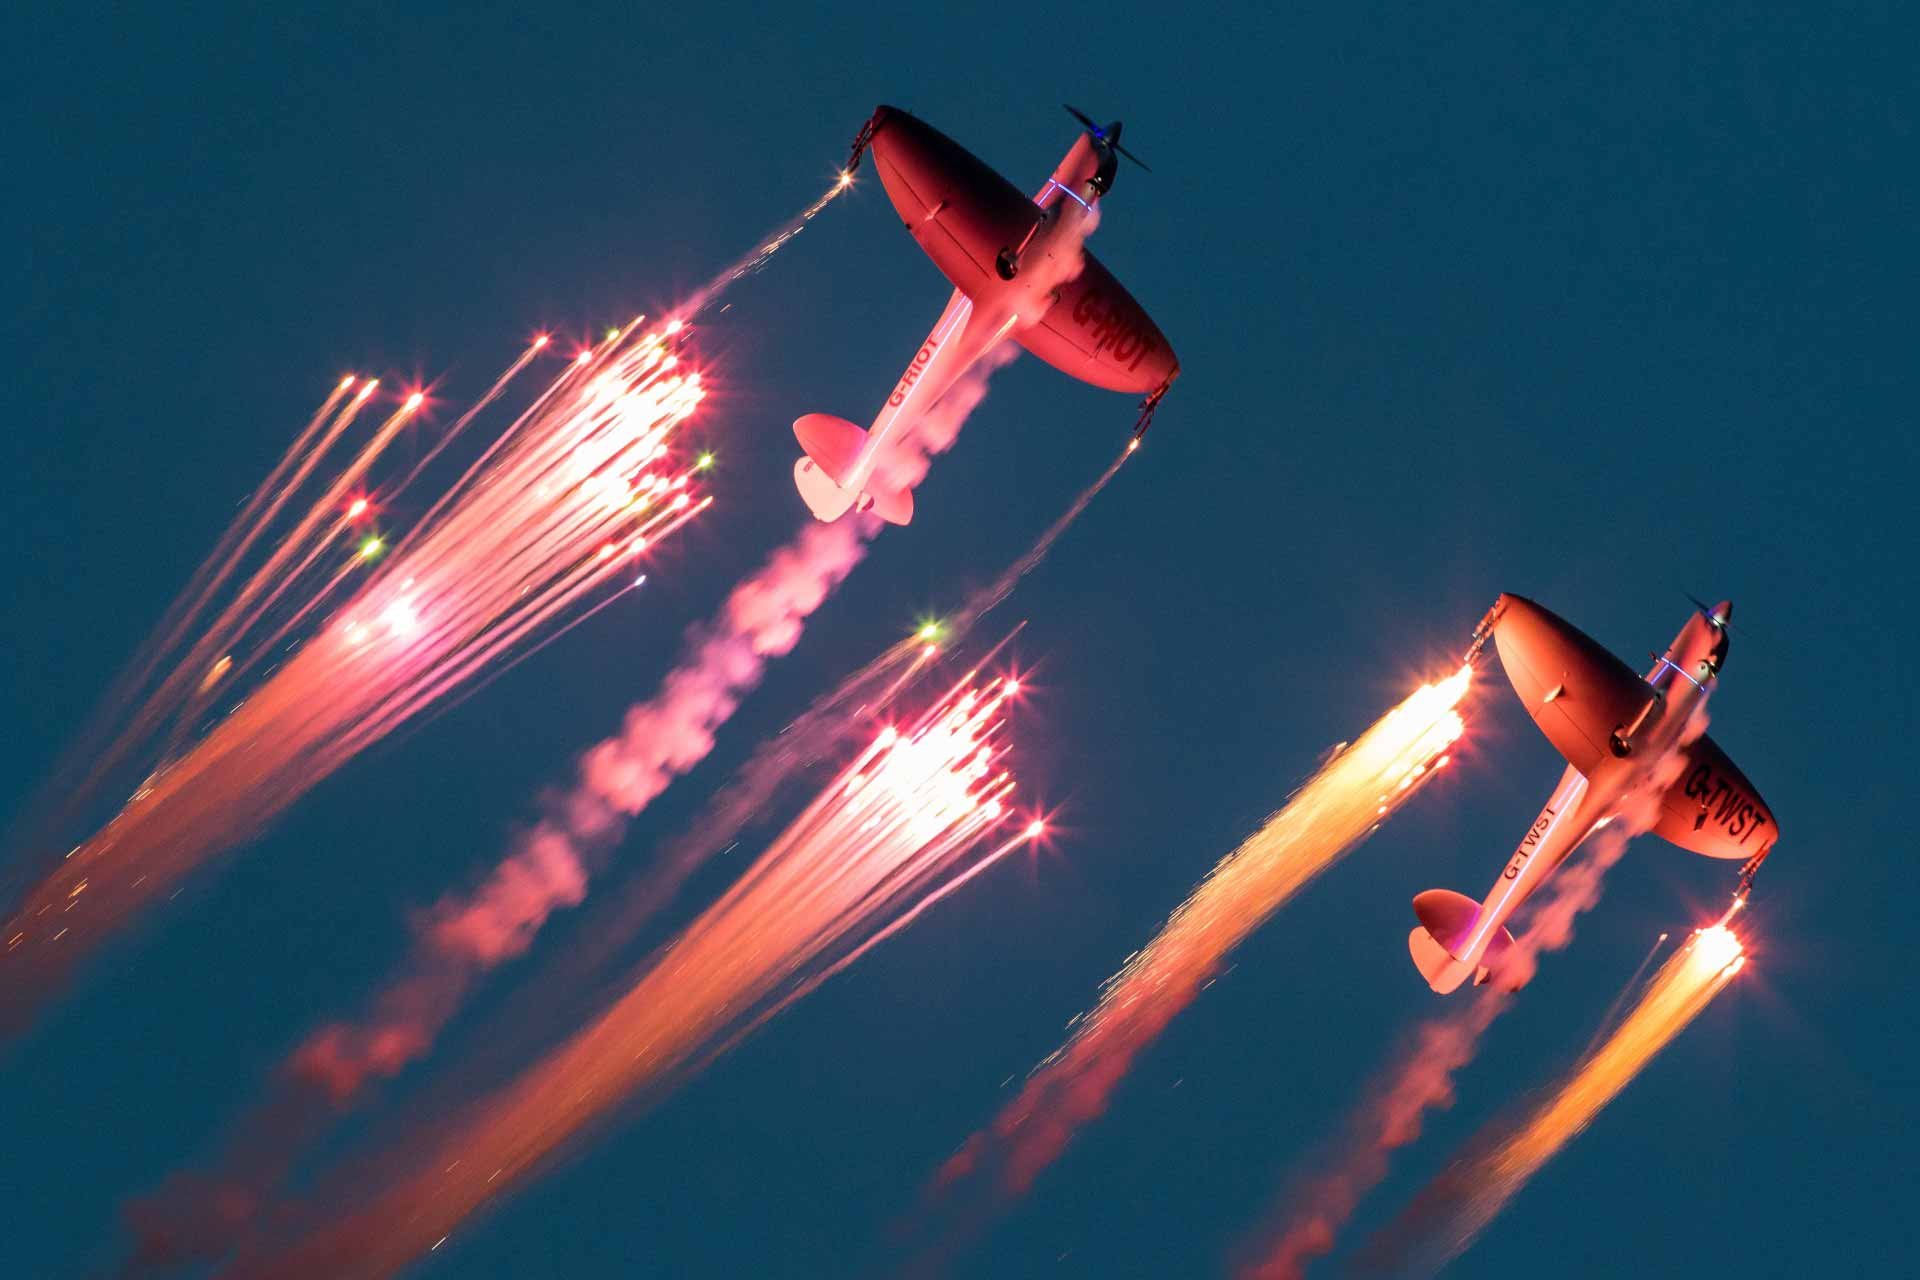 Two planes firing off colourful flares while they fly during the night show